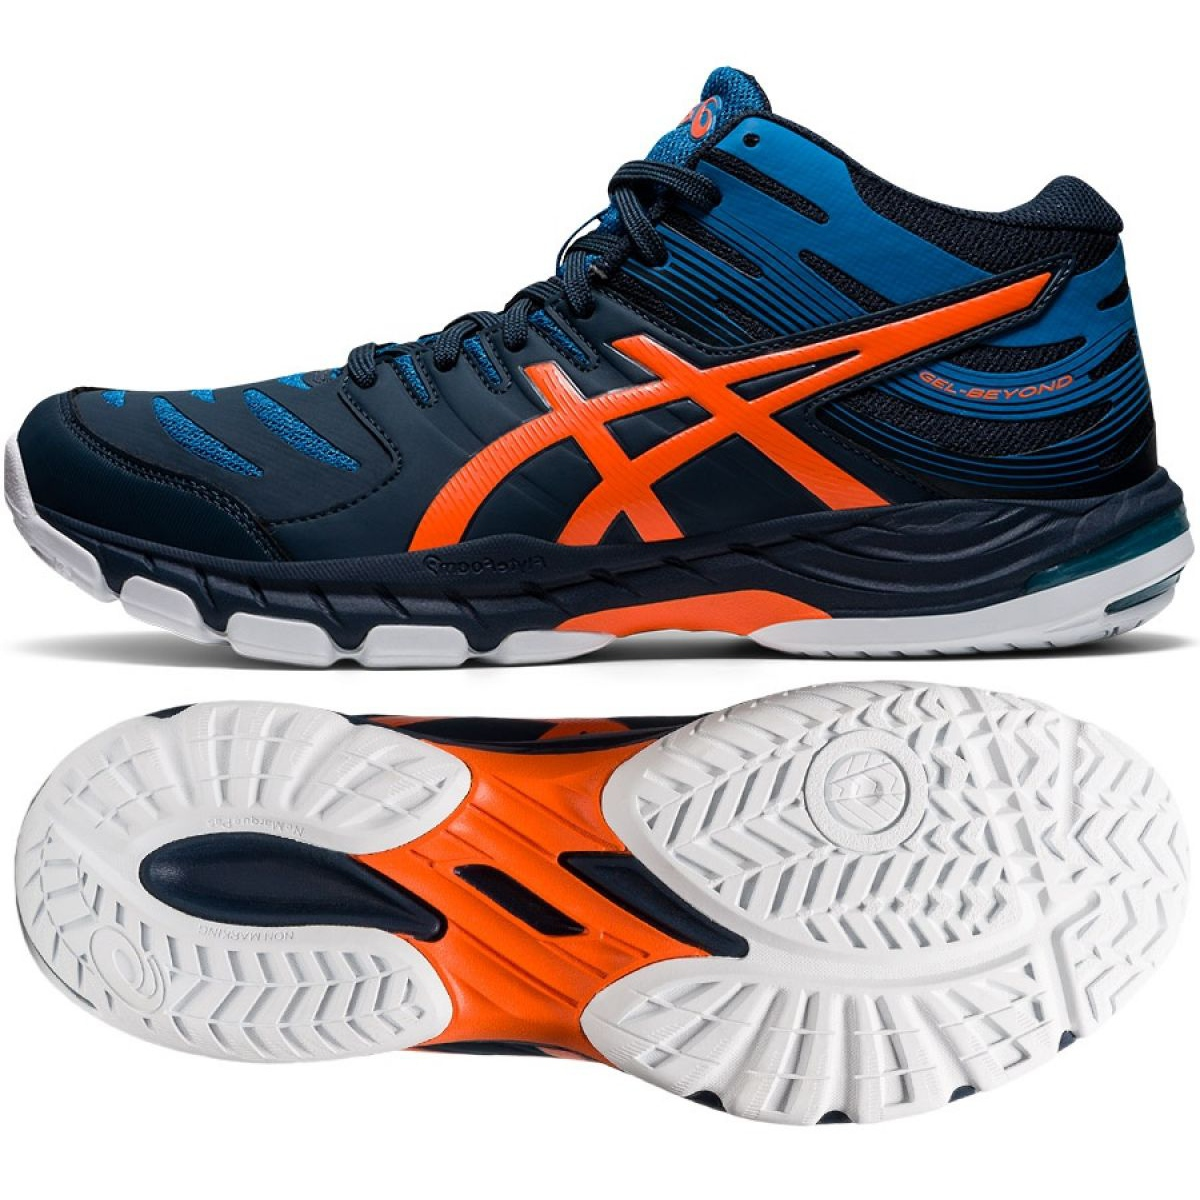 Asics GEL-BEYOND Mt 6 M 1071A050-400 volleyball shoes multicolored navy blue